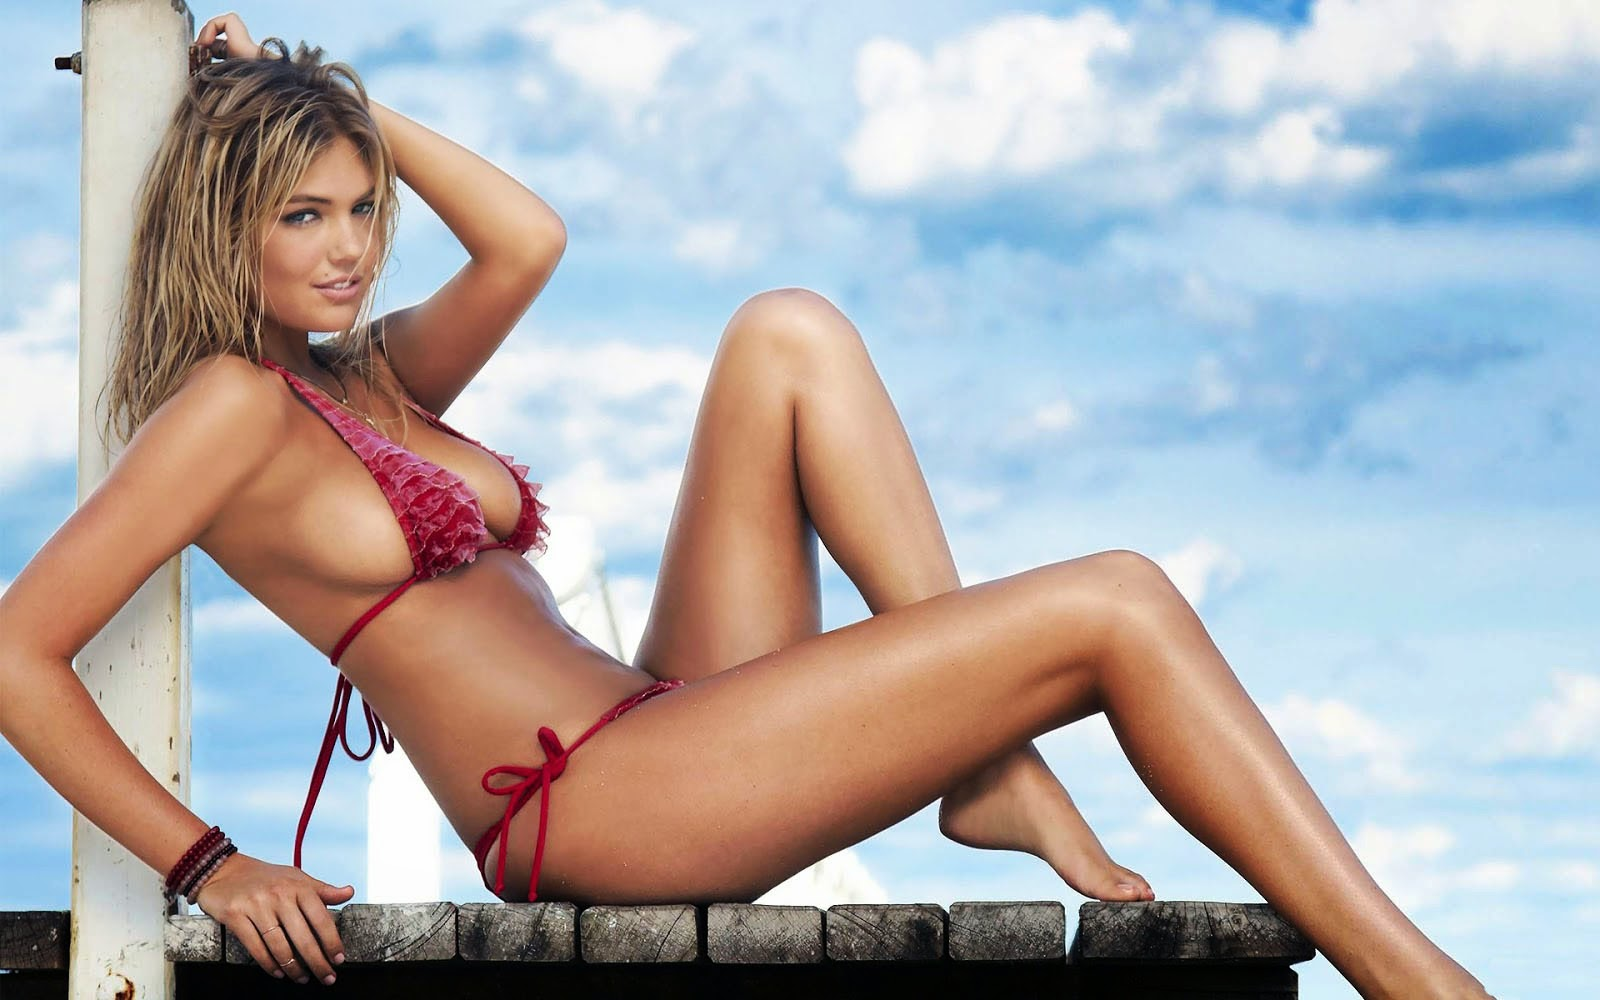 Global pictures gallery kate upton full hd wallpapers - Elena diva futura ...